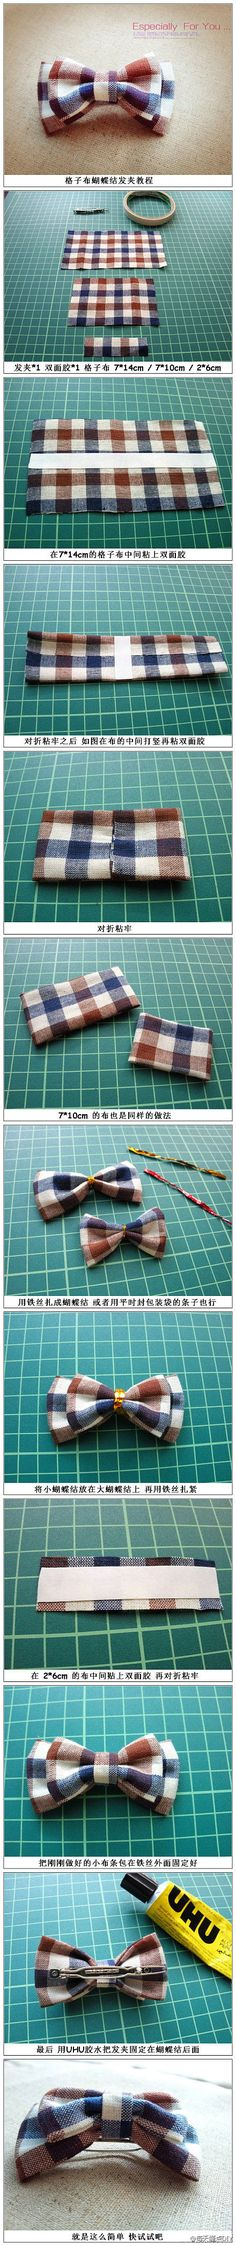 Cute, I could turn this into a clip-on bow tie for my nephew